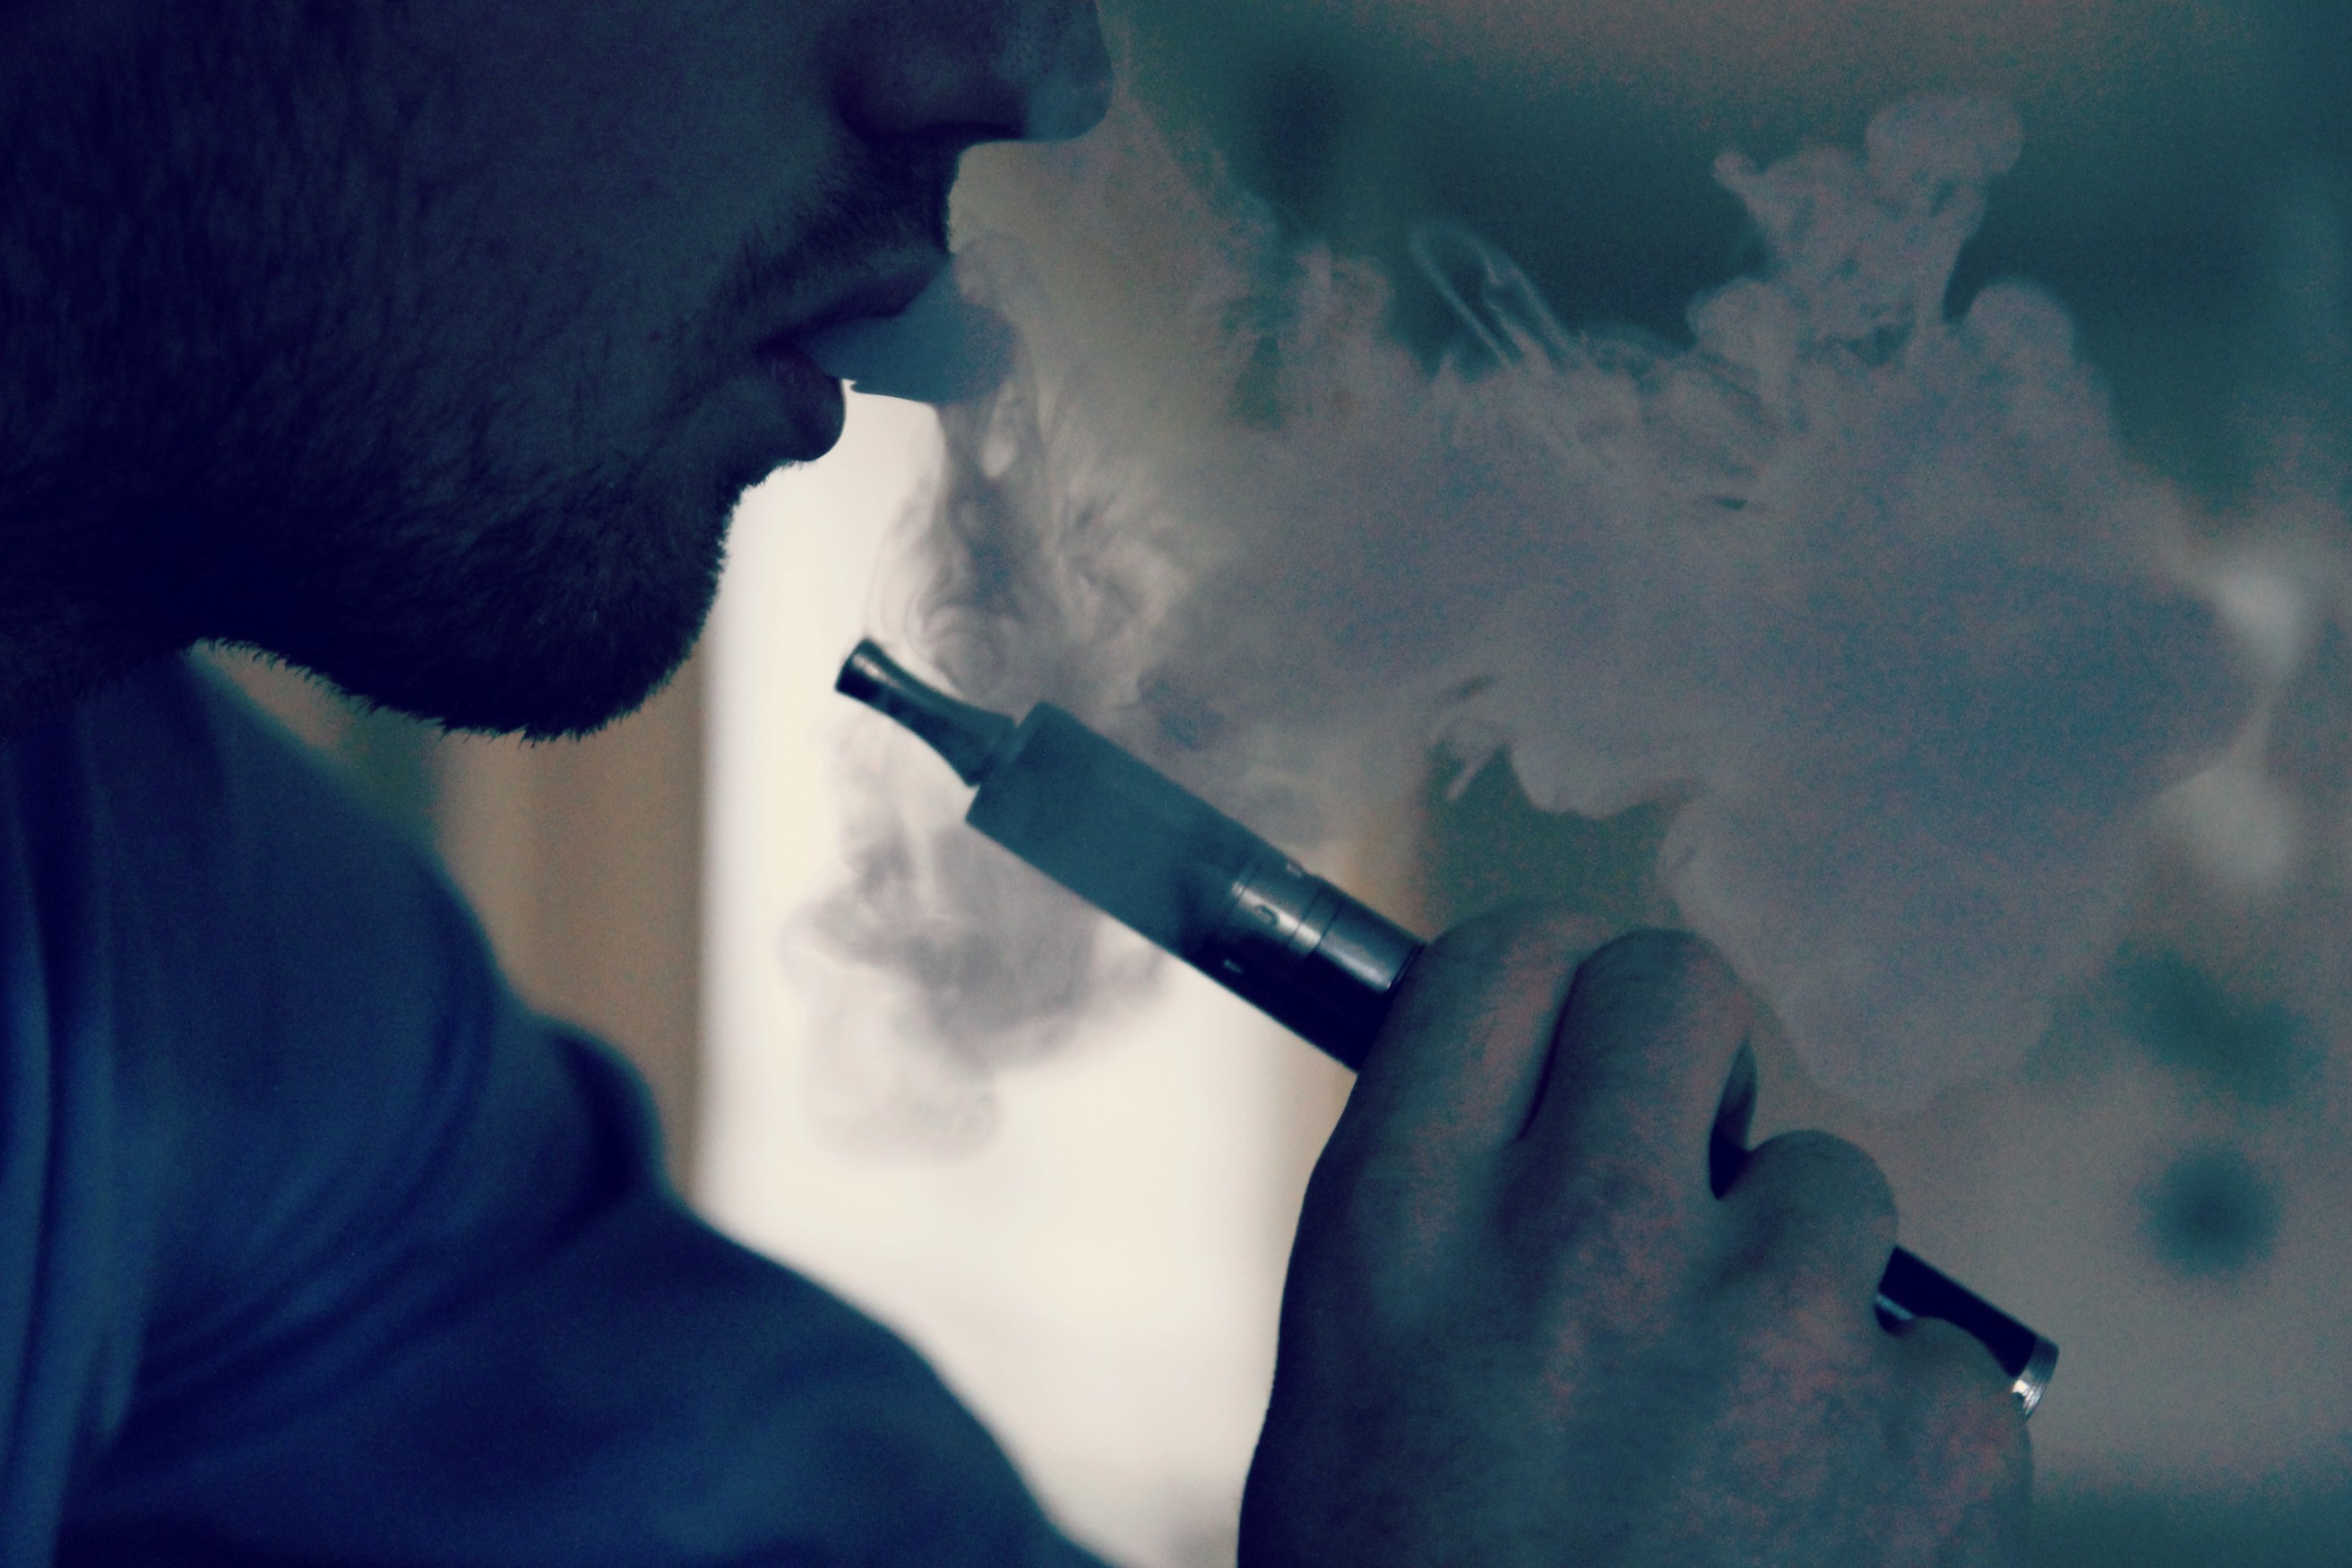 If You're Busted Vaping Marijuana in Florida, You Face Felony Charges